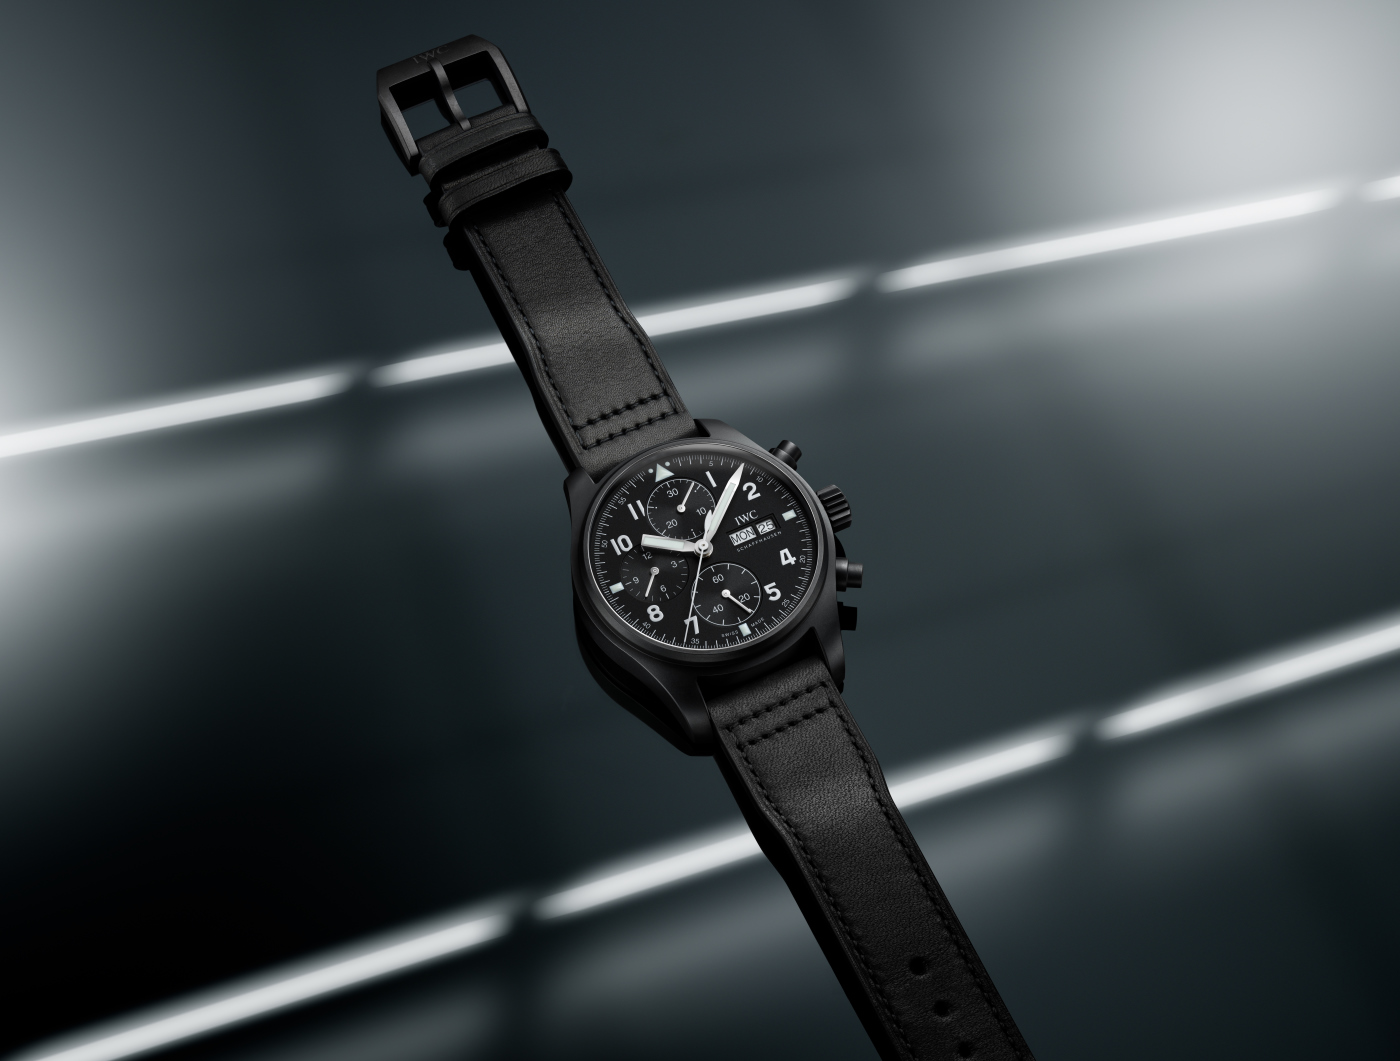 iwc_pilot_s_watch_chronograph_edition_tribute_to_3705_front_2-_europa_star_watch_magazine_2021